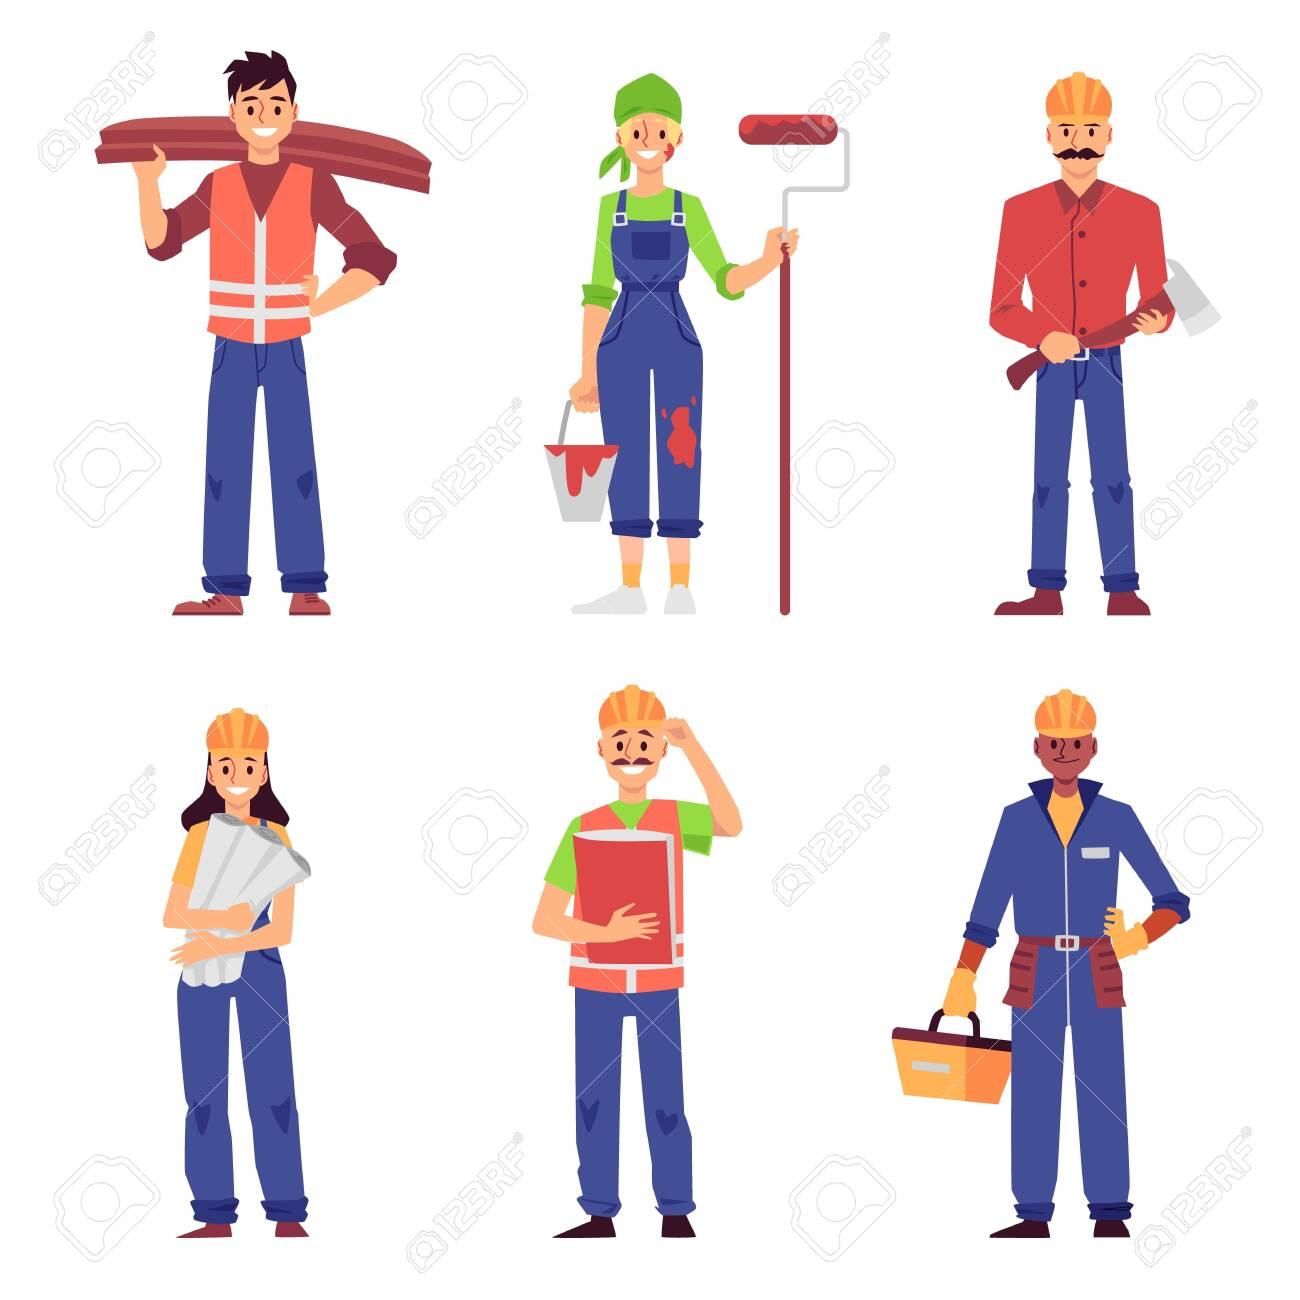 Cartoon set of builder and construction worker people isolated on white background - men and women in uniform standing and smiling - flat vector illustration. - 152838931